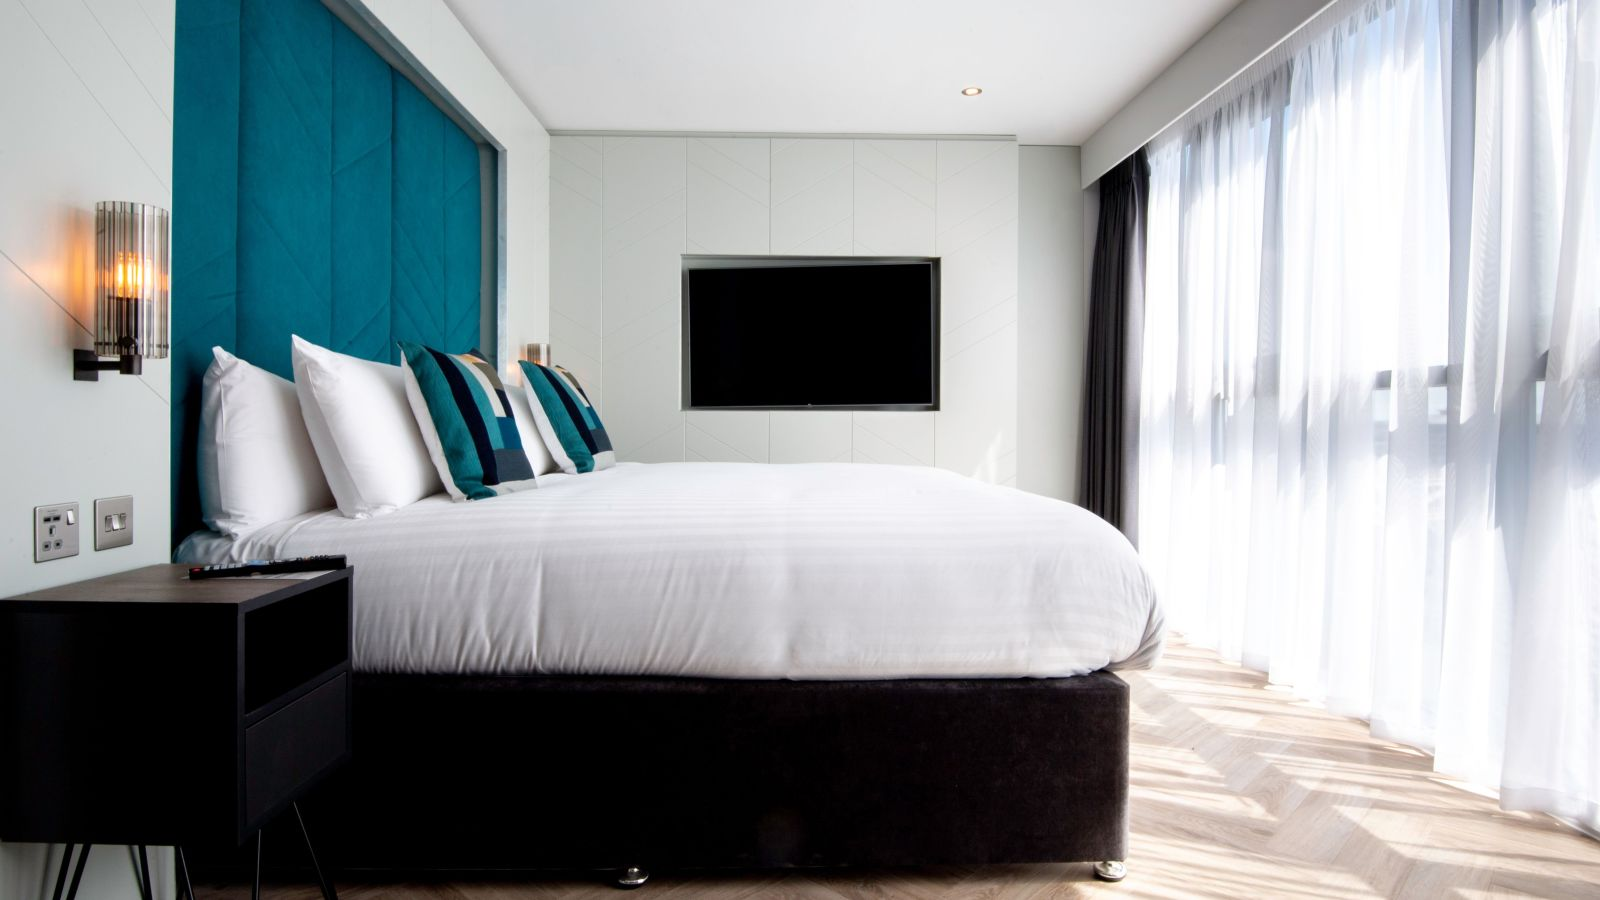 Smart Studio Student Apartment in Newcastle. King Size bed and Flat Screen TV. IconInc @ Roomzzz Newcastle